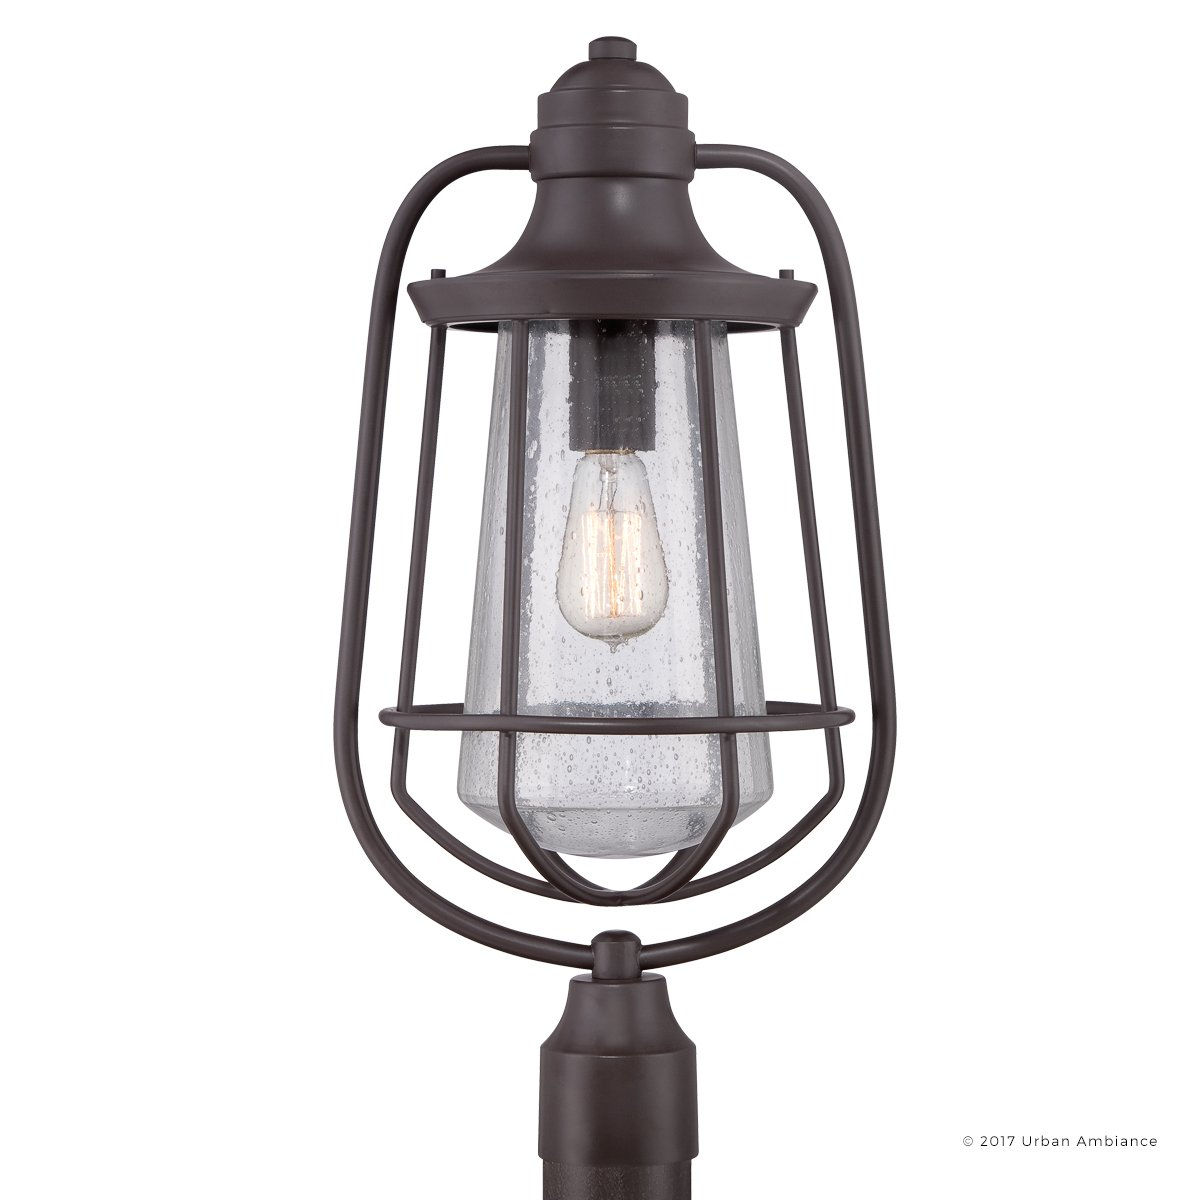 Luxury Vintage Outdoor Post Light, Large Size: 23''H x 11''W, with Nautical Style Elements, Cage Design, Estate Bronze Finish and Seeded Glass, Includes Edison Bulb, UQL1124 by Urban Ambiance by Urban Ambiance